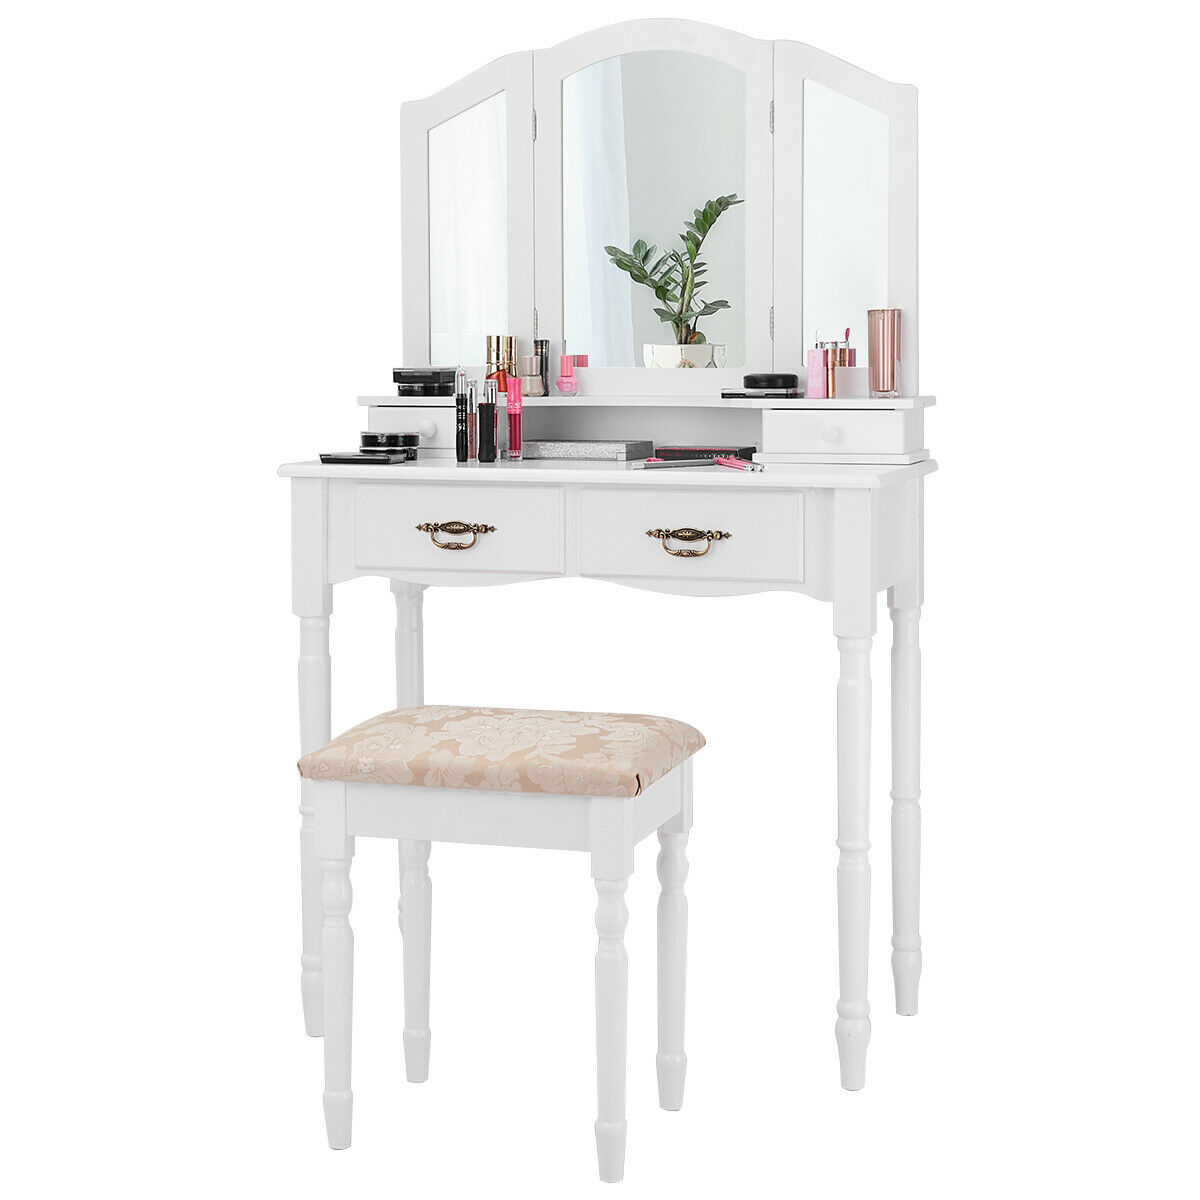 Black / White Vanity Makeup Dressing Table with Tri Folding Mirror